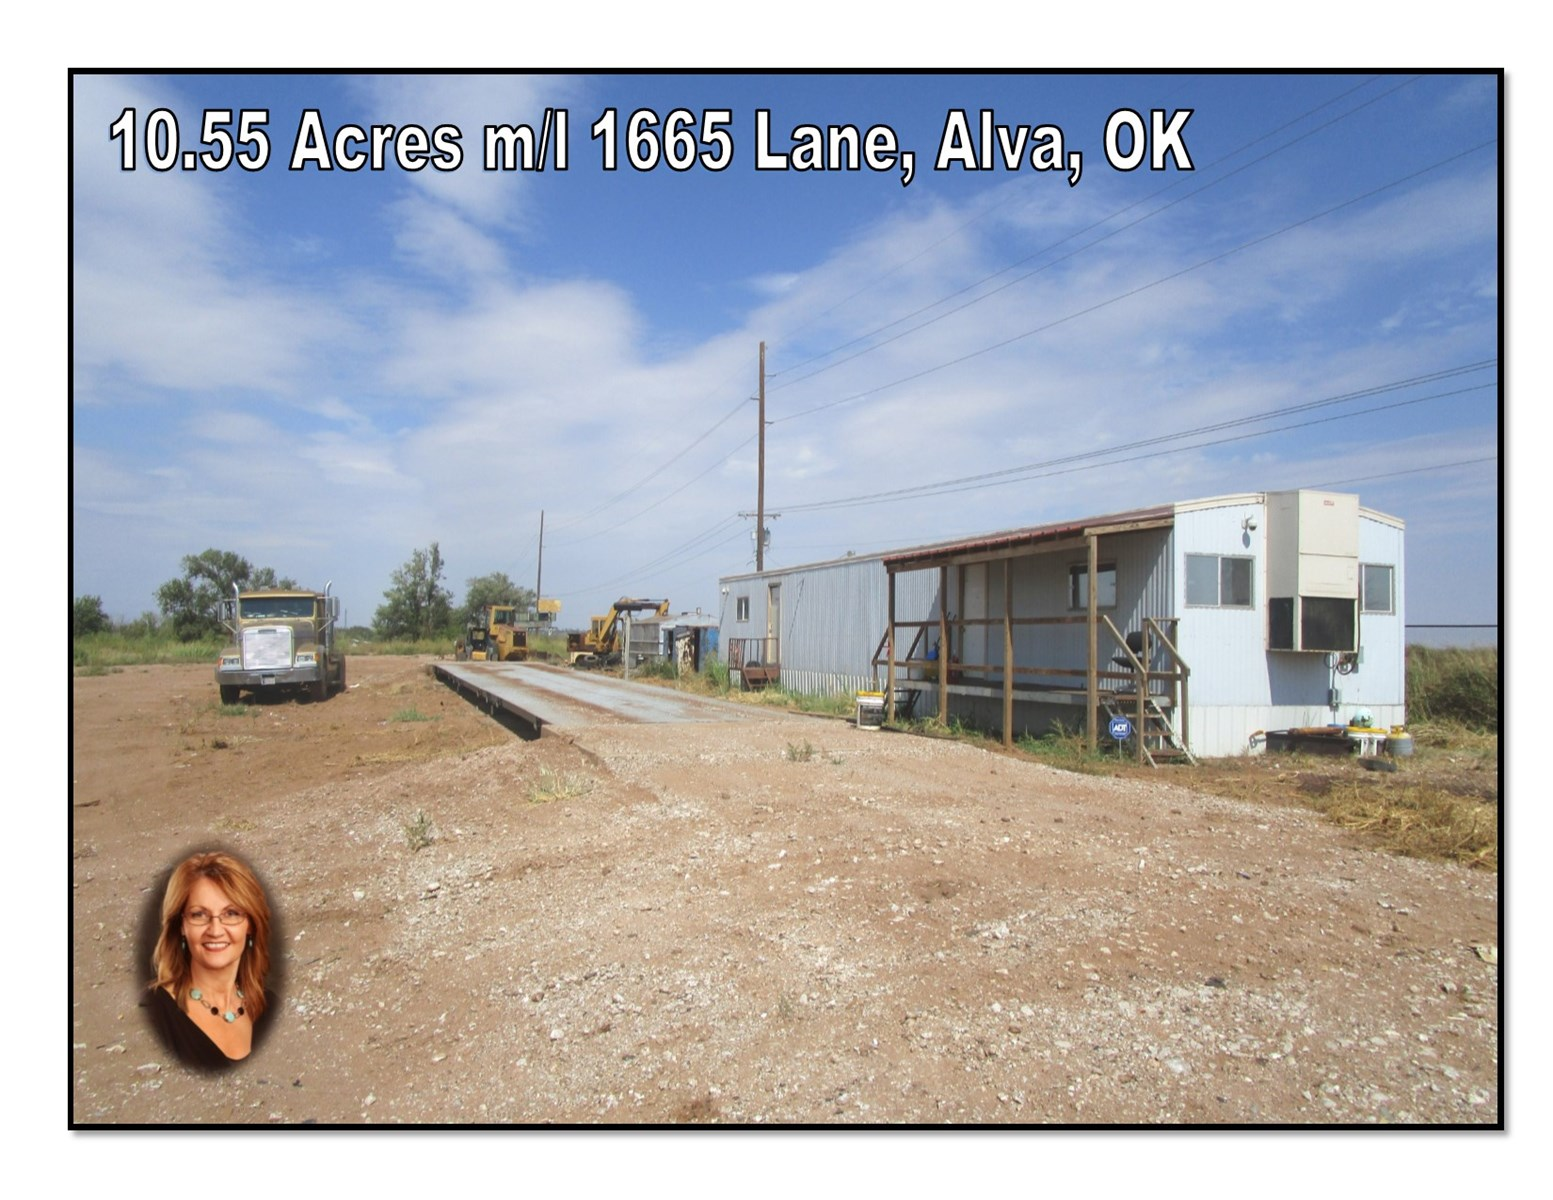 Land for Sale Outside City Limits Alva, OK